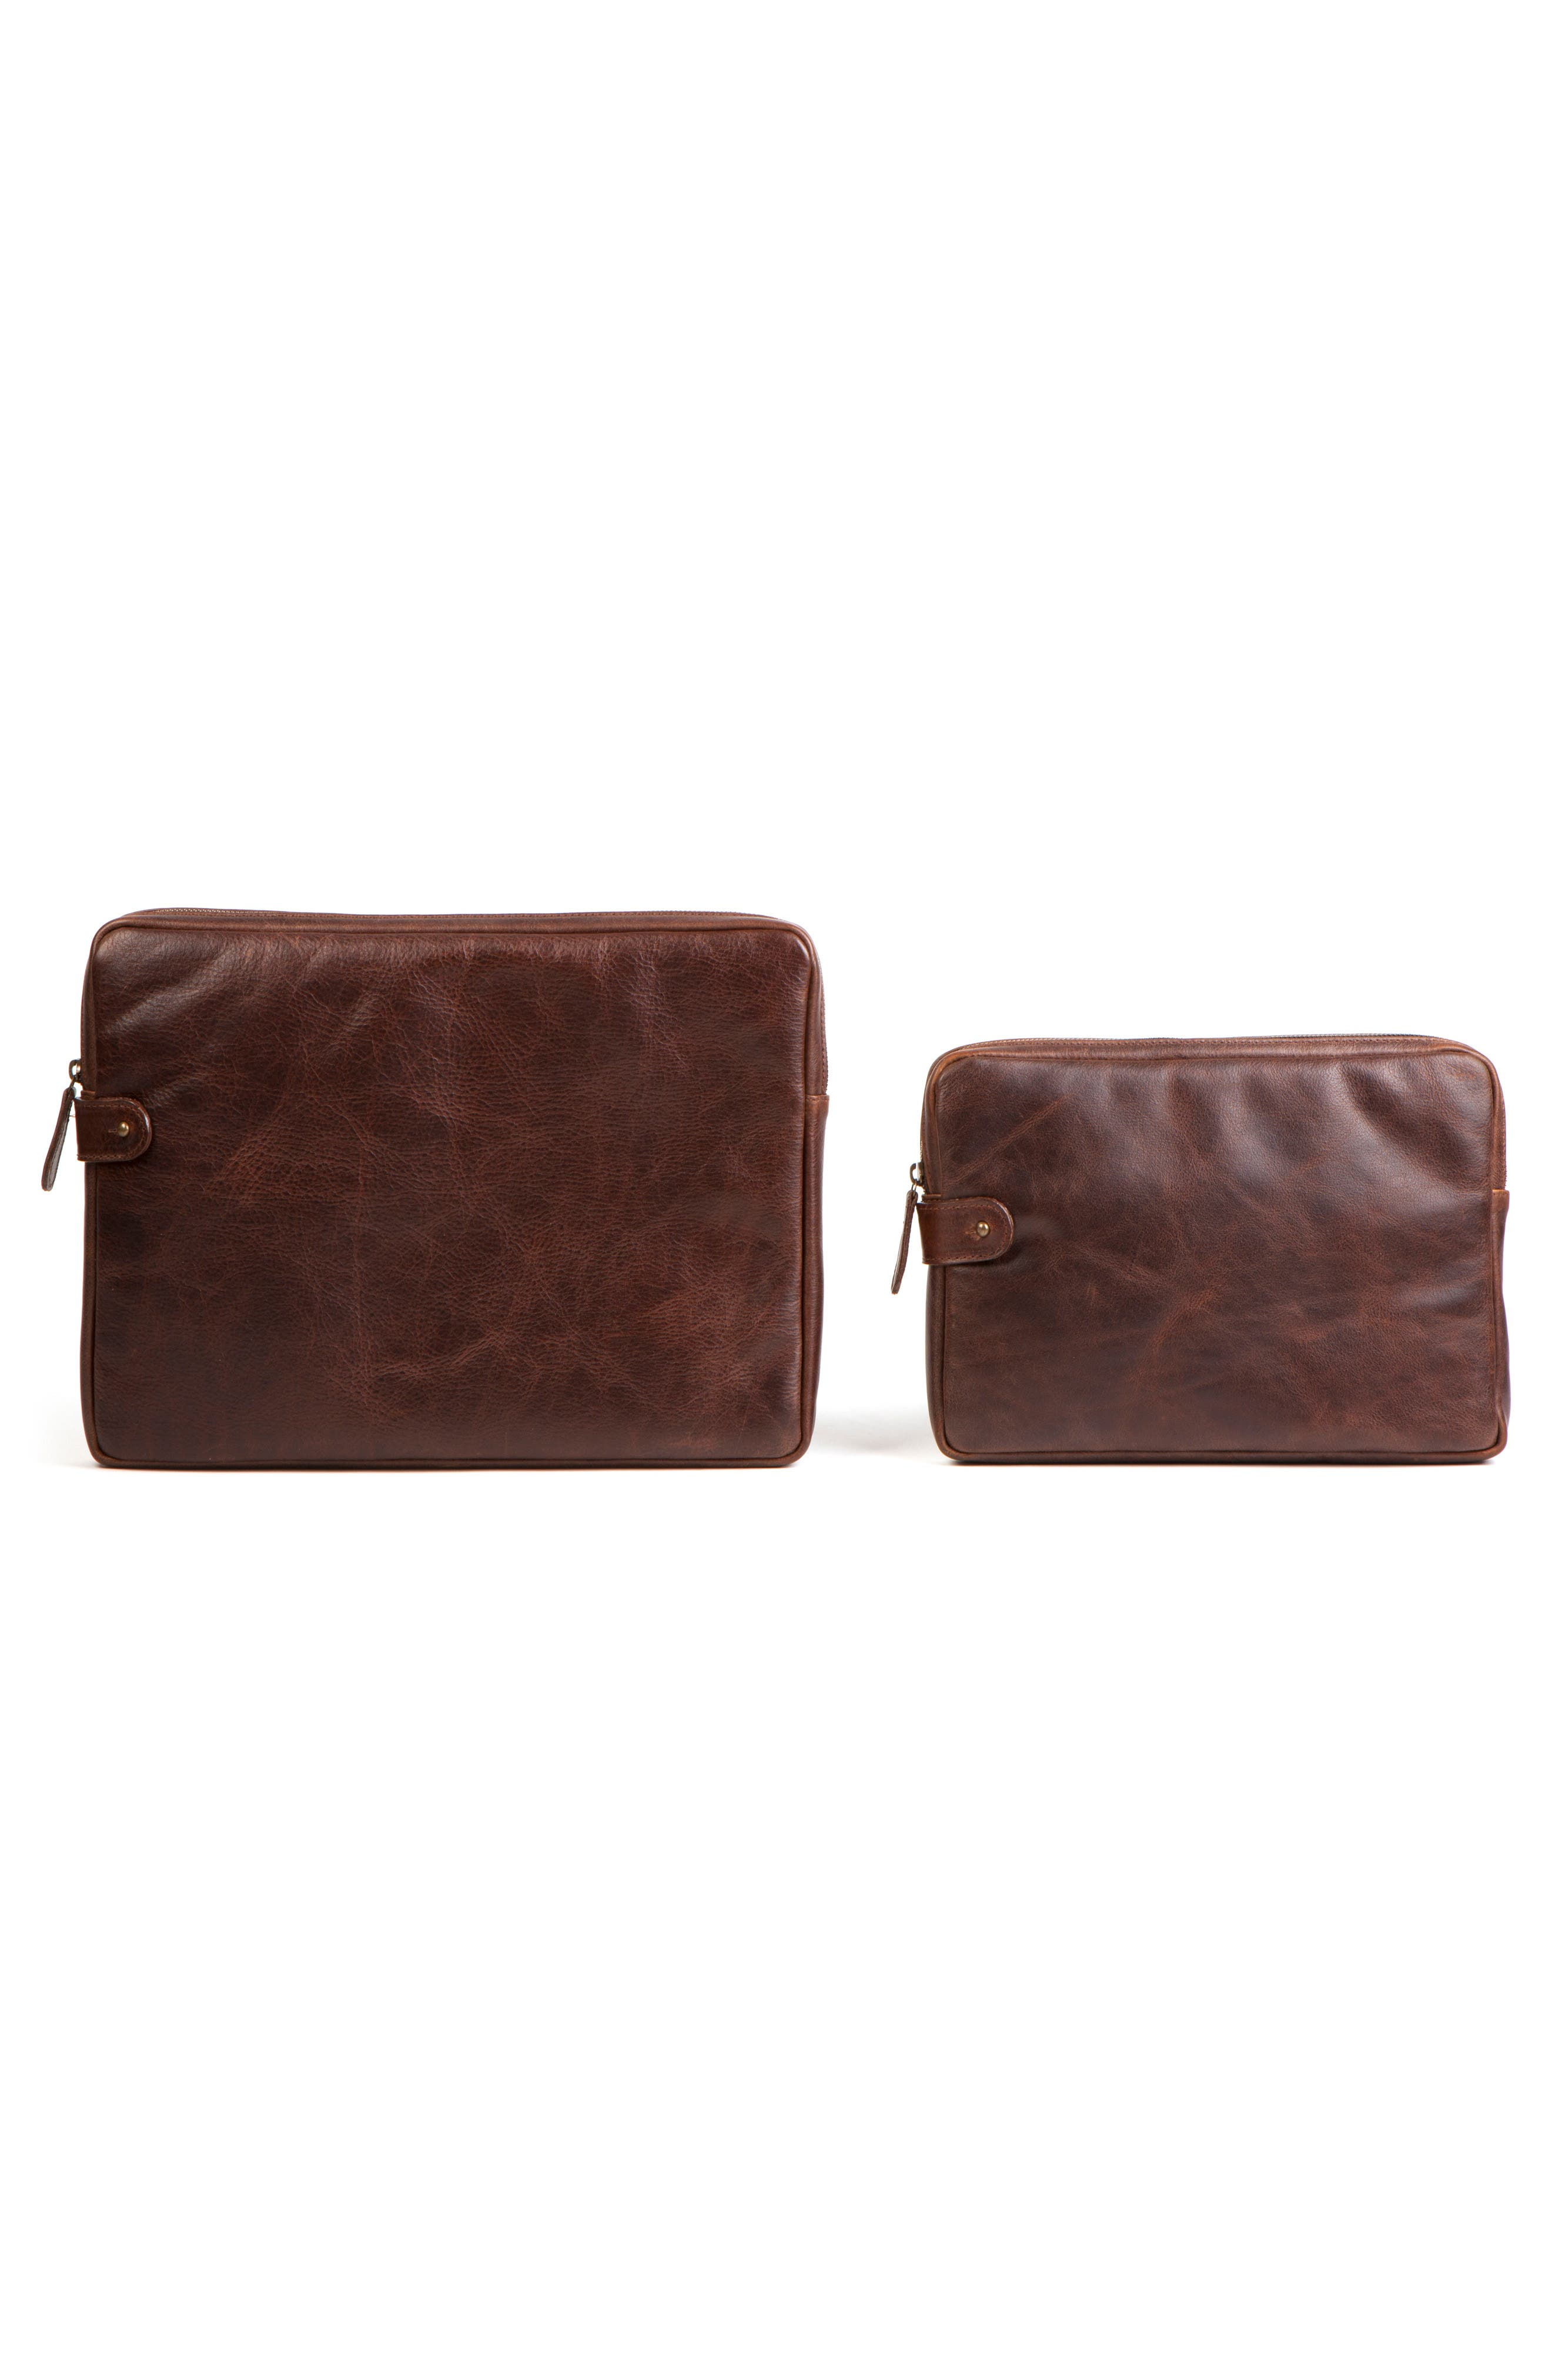 Leather Tablet Sleeve,                             Alternate thumbnail 5, color,                             Titan Milled Brown